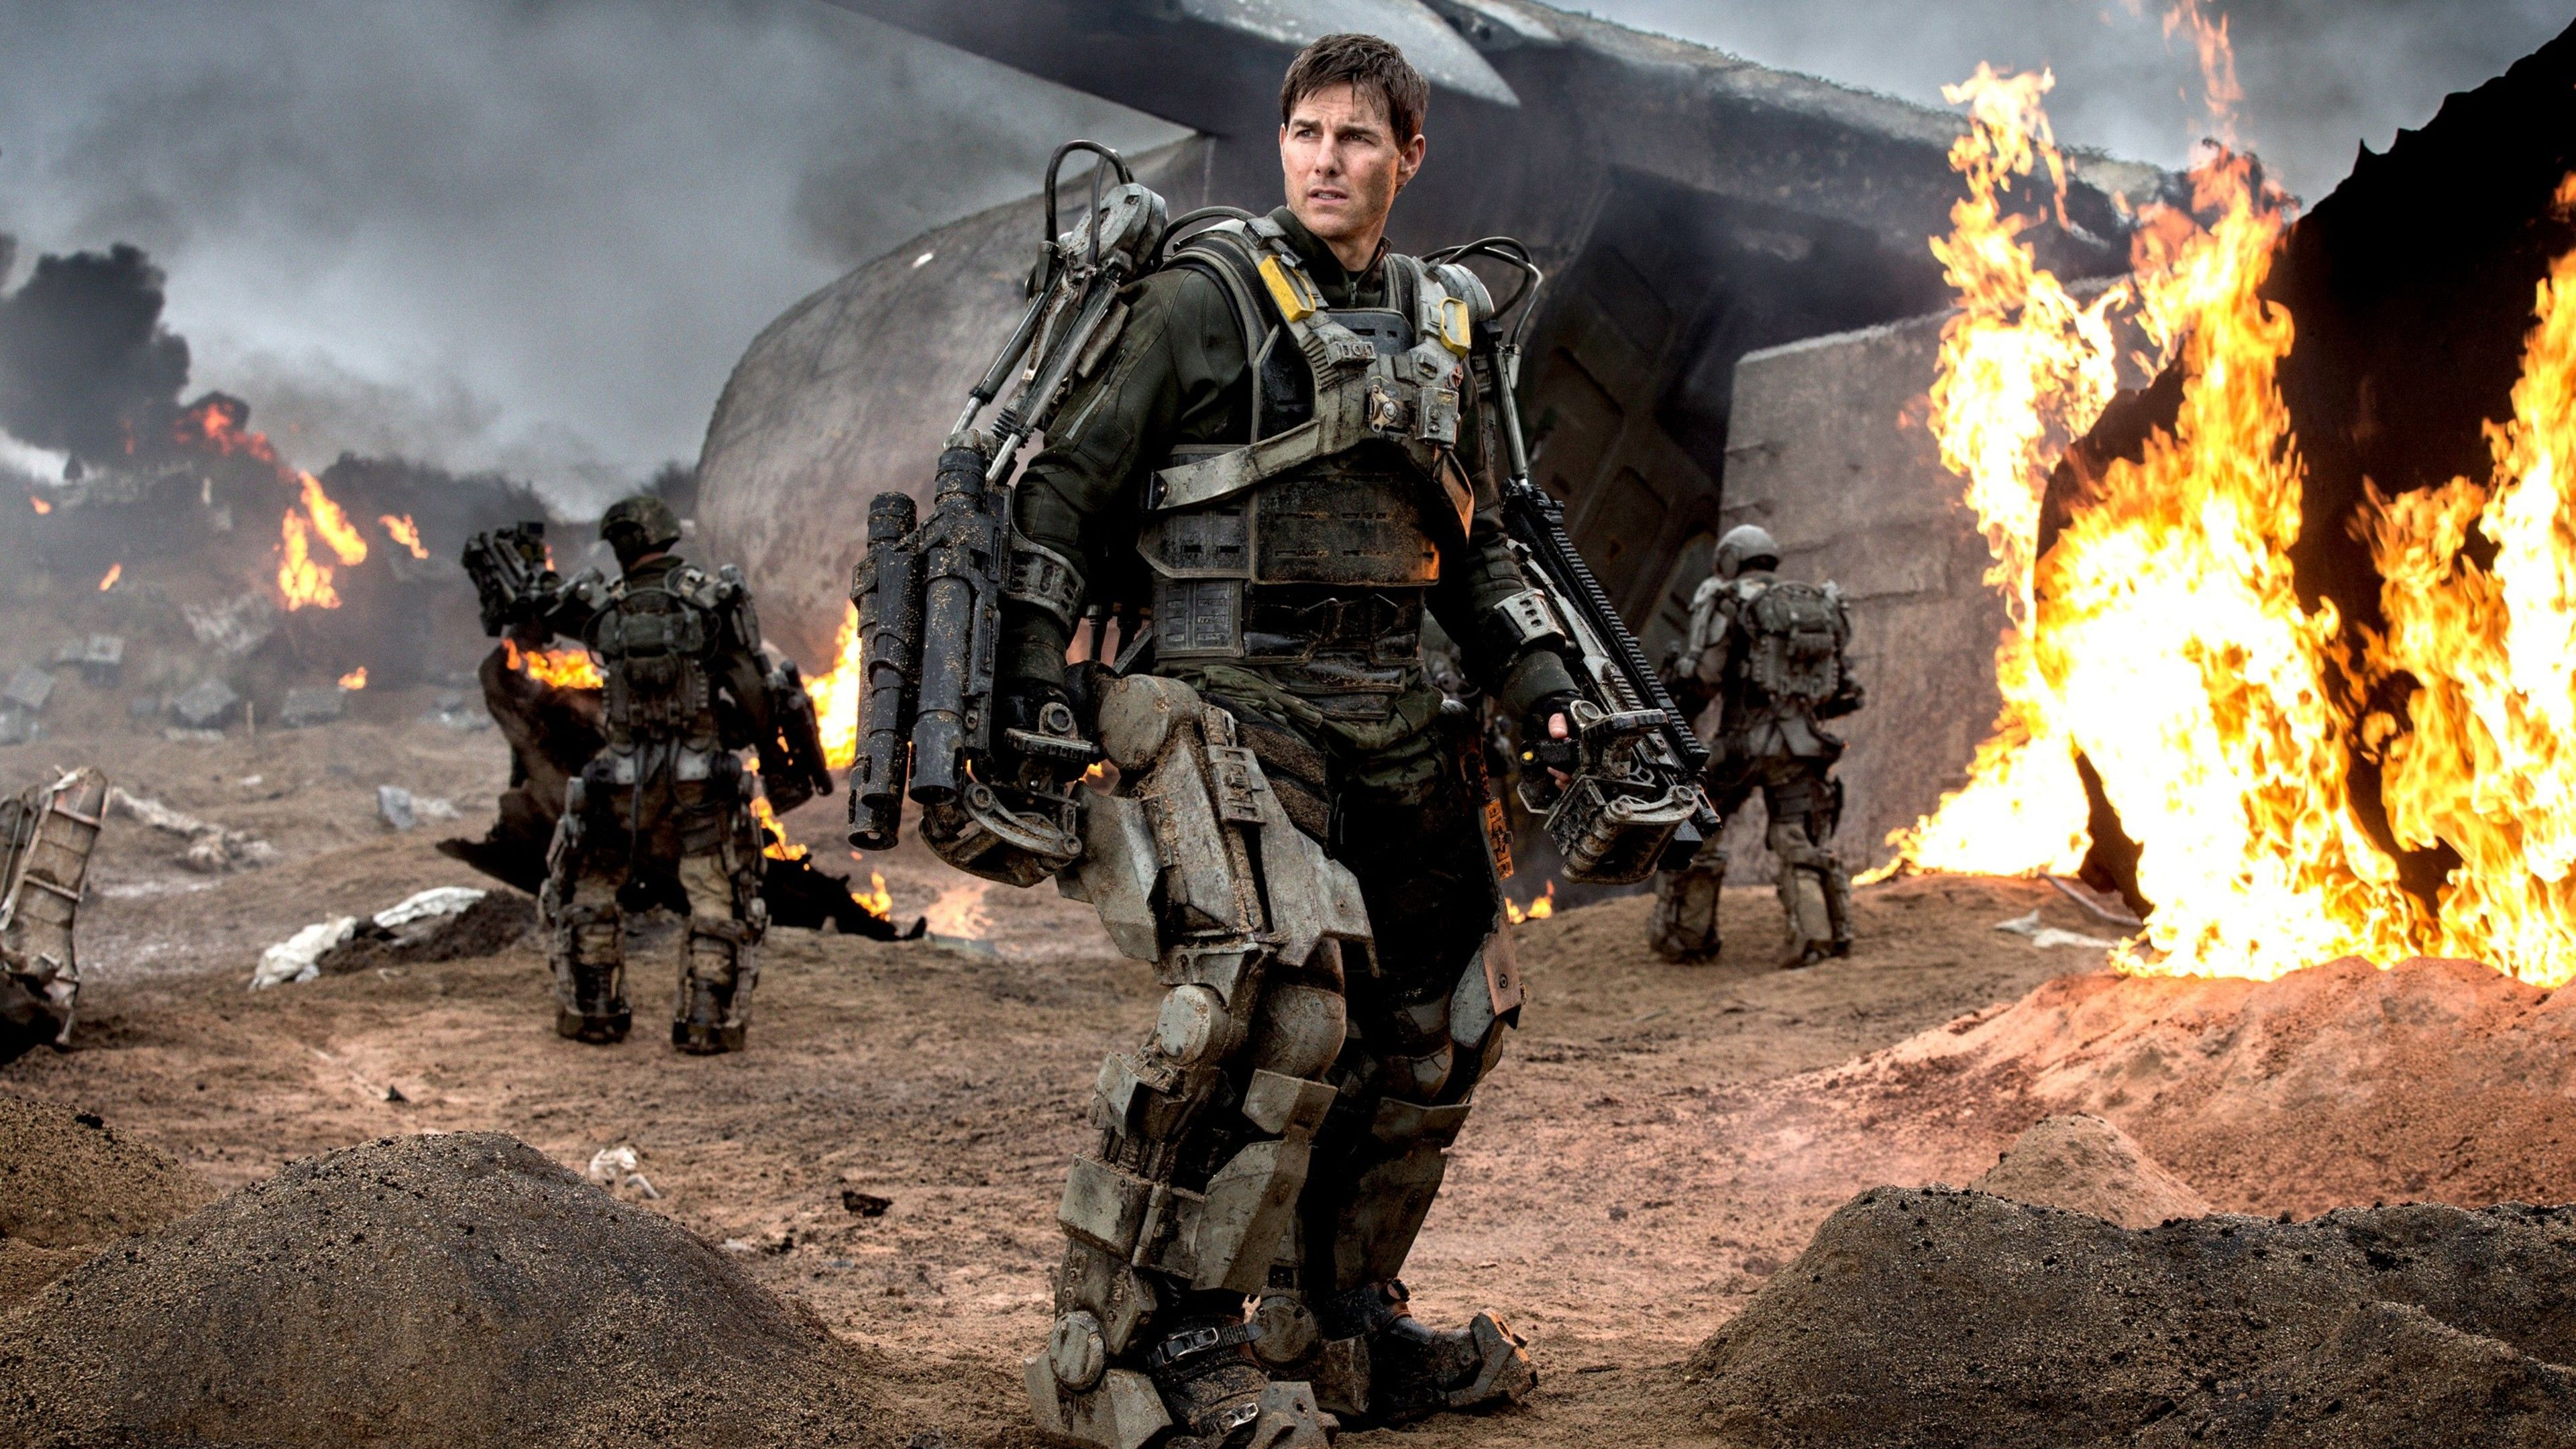 Edge of Tomorrow 2 Update: Doug Liman Reveals When the Sequel Will Get Made